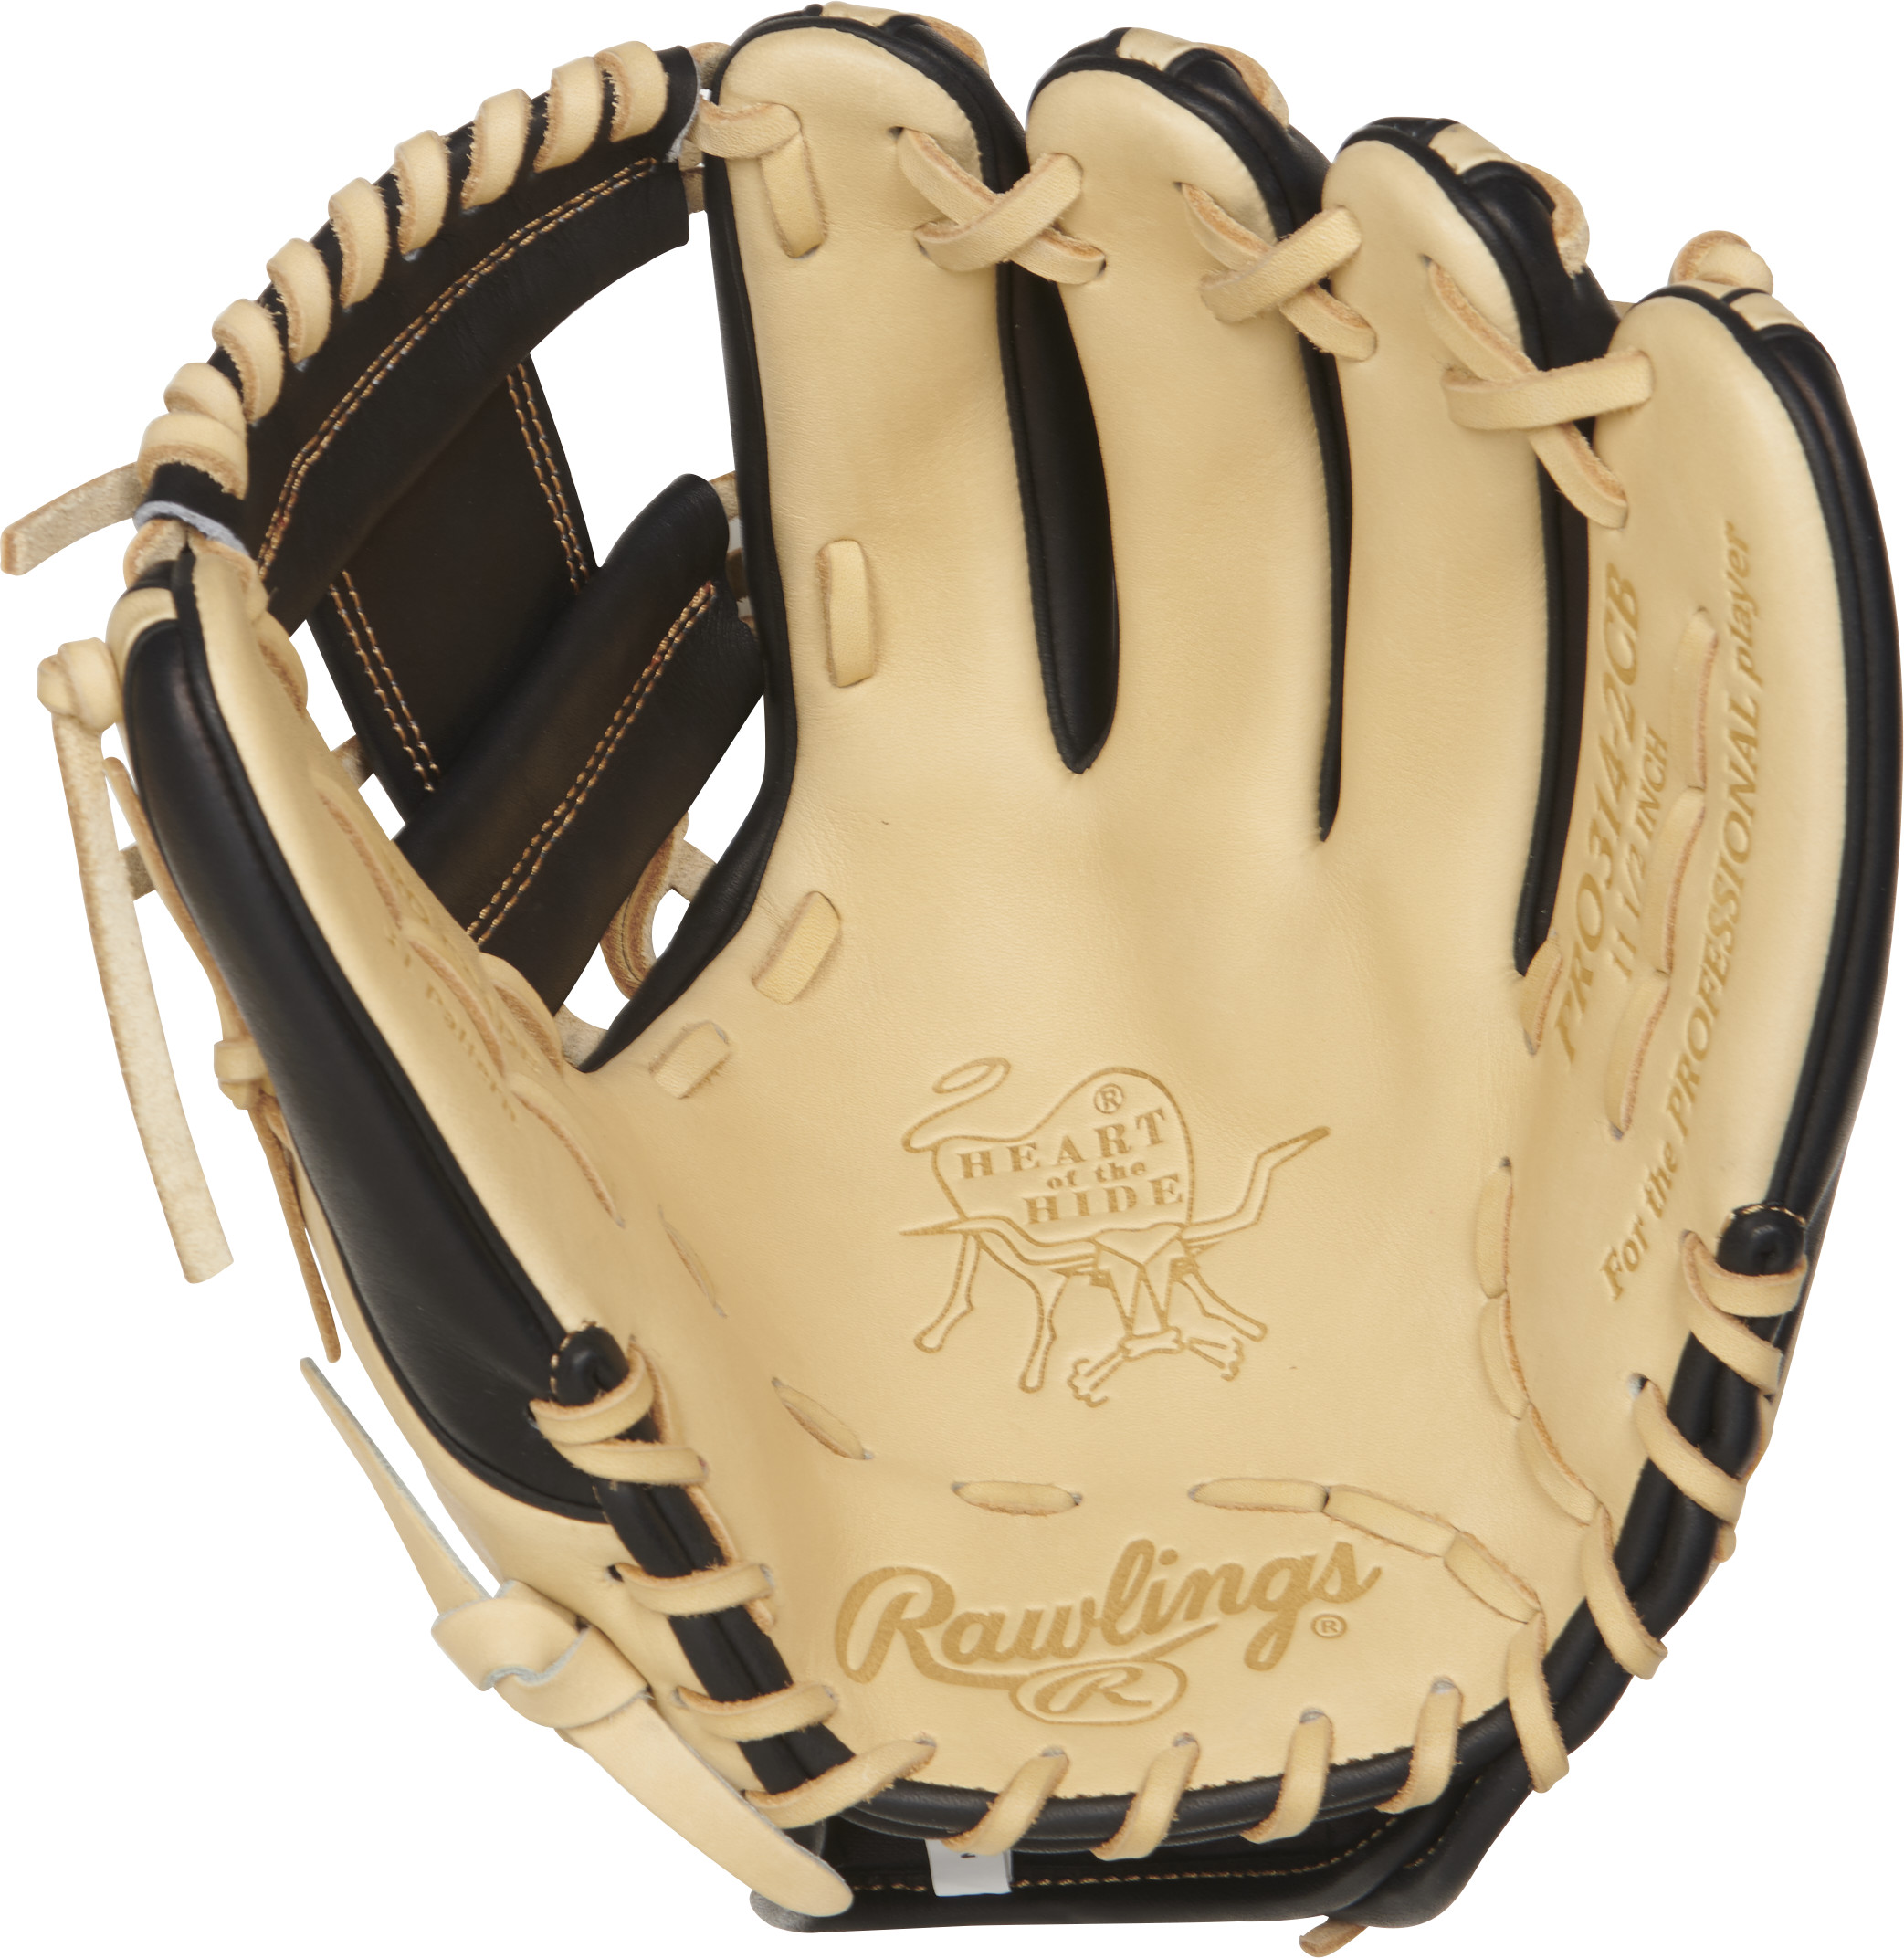 http://www.bestbatdeals.com/images/gloves/rawlings/PRO314-2CB-1.jpg